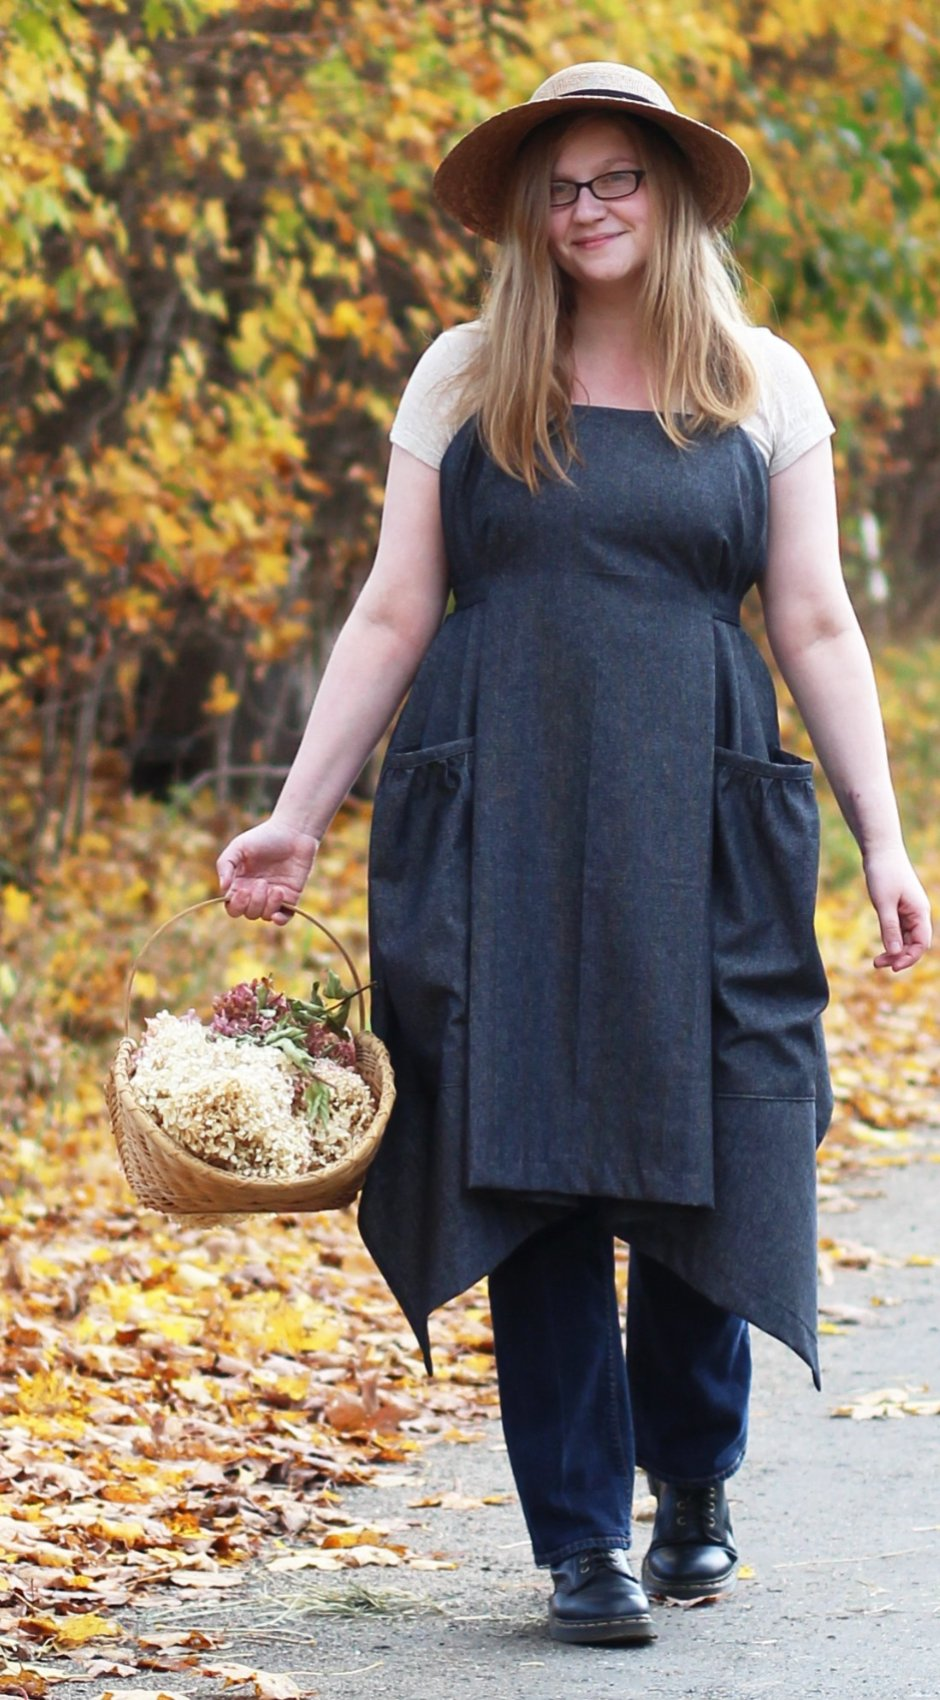 XS-5X Hippy Apron in Black Denim, plus size, front view